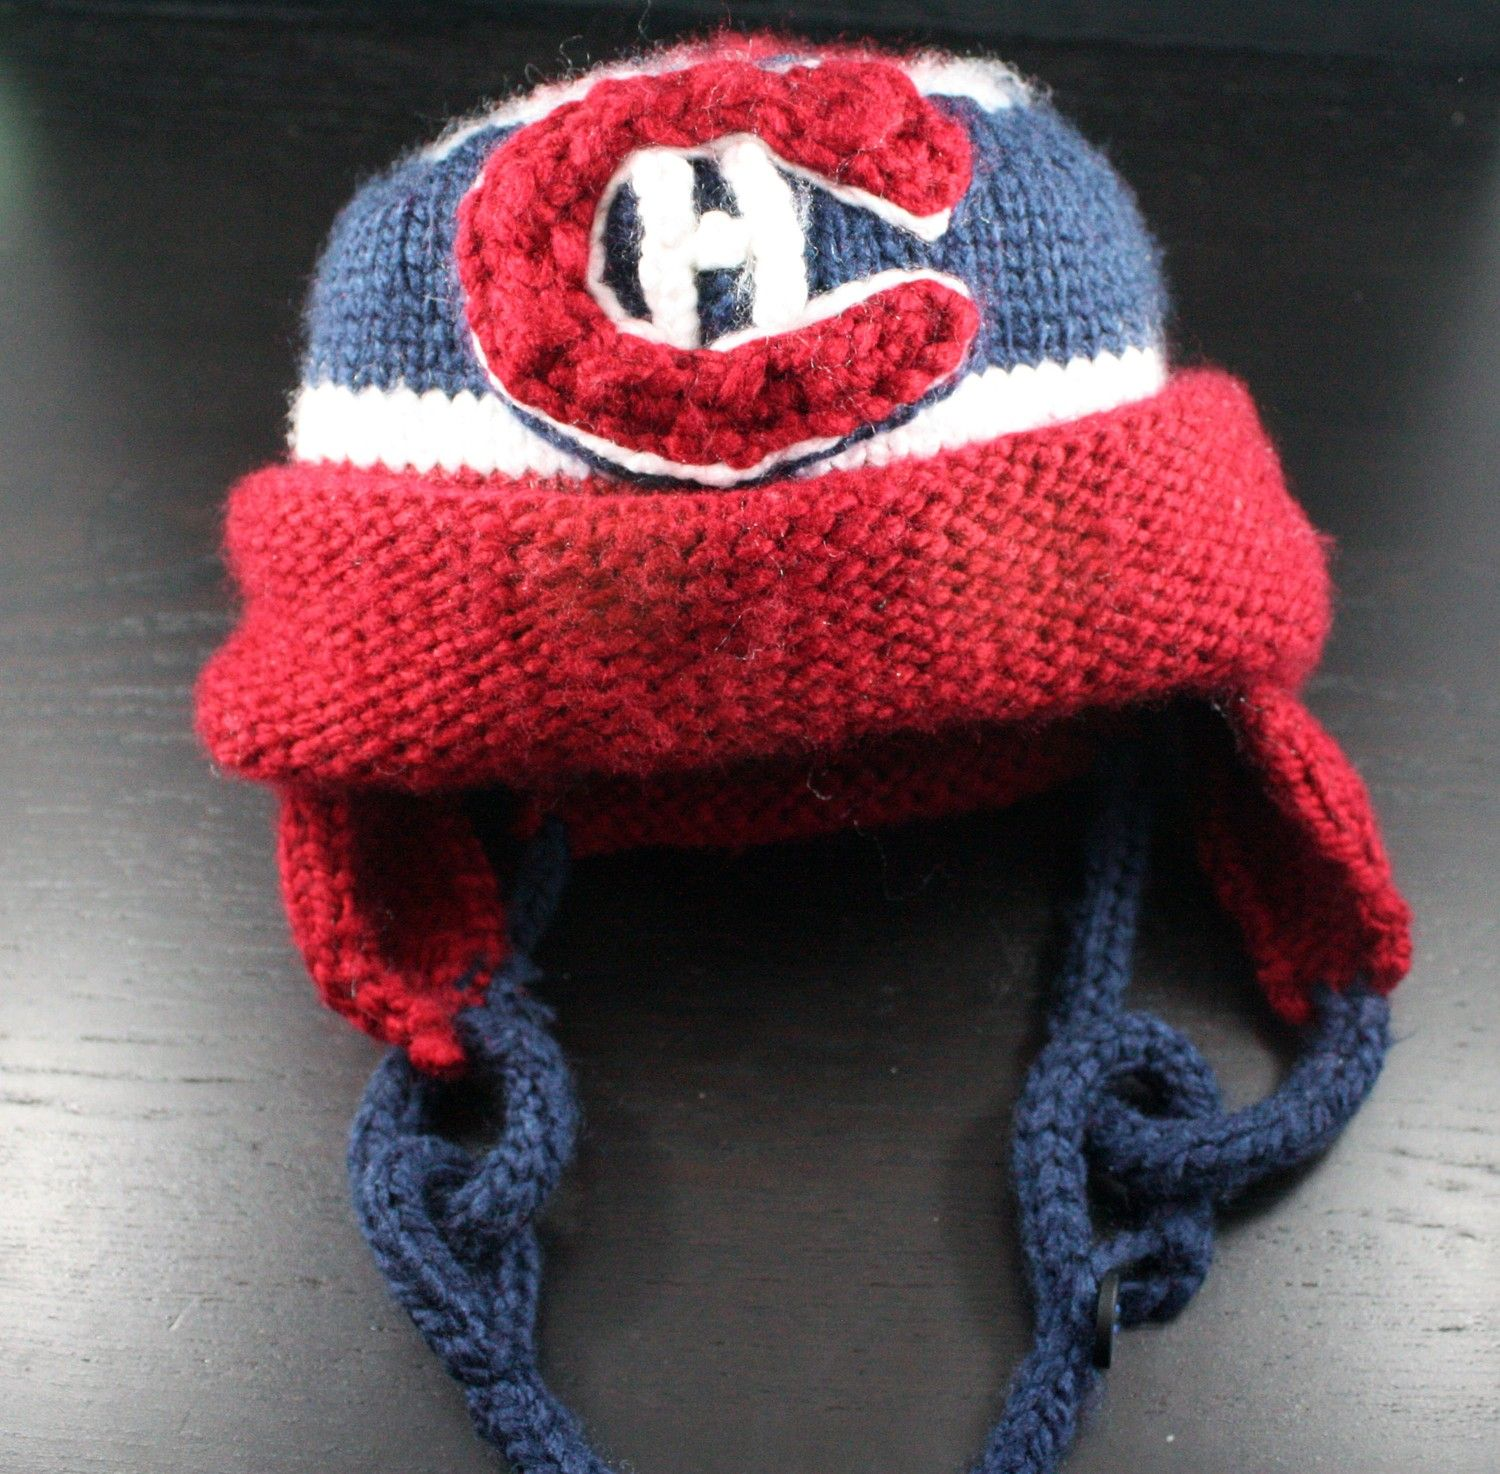 Knit hockey helmet hat. | Helmet hat, Hats, Hockey hats